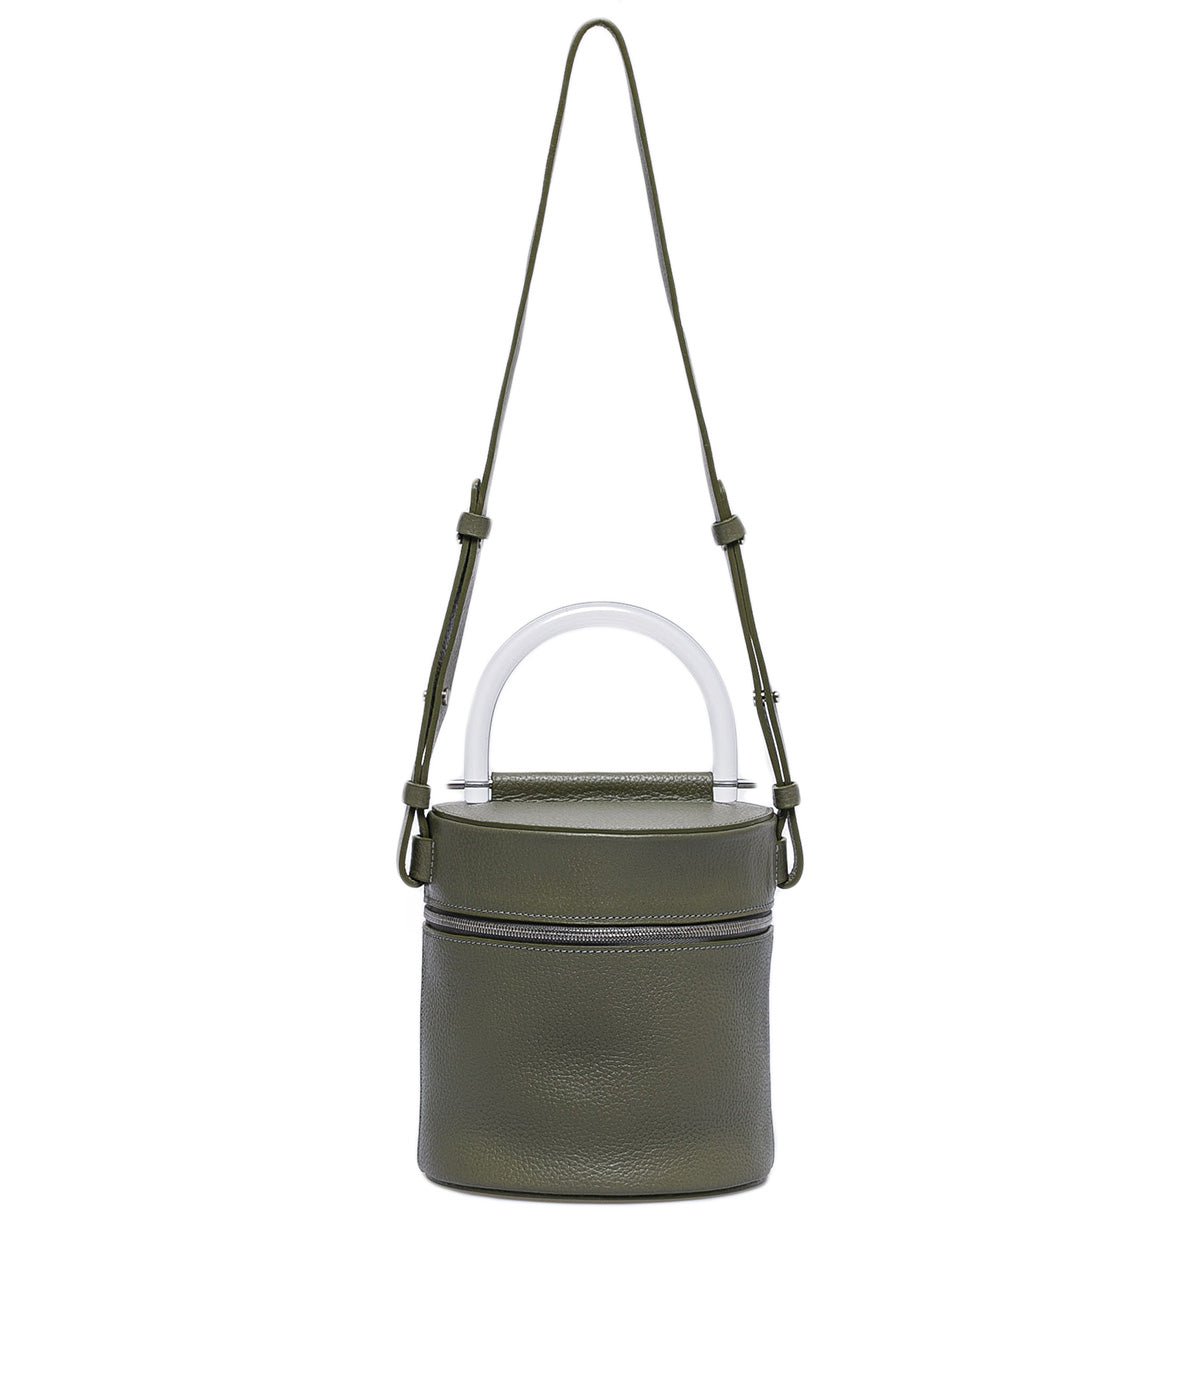 Light Khaki Green Drum Bag